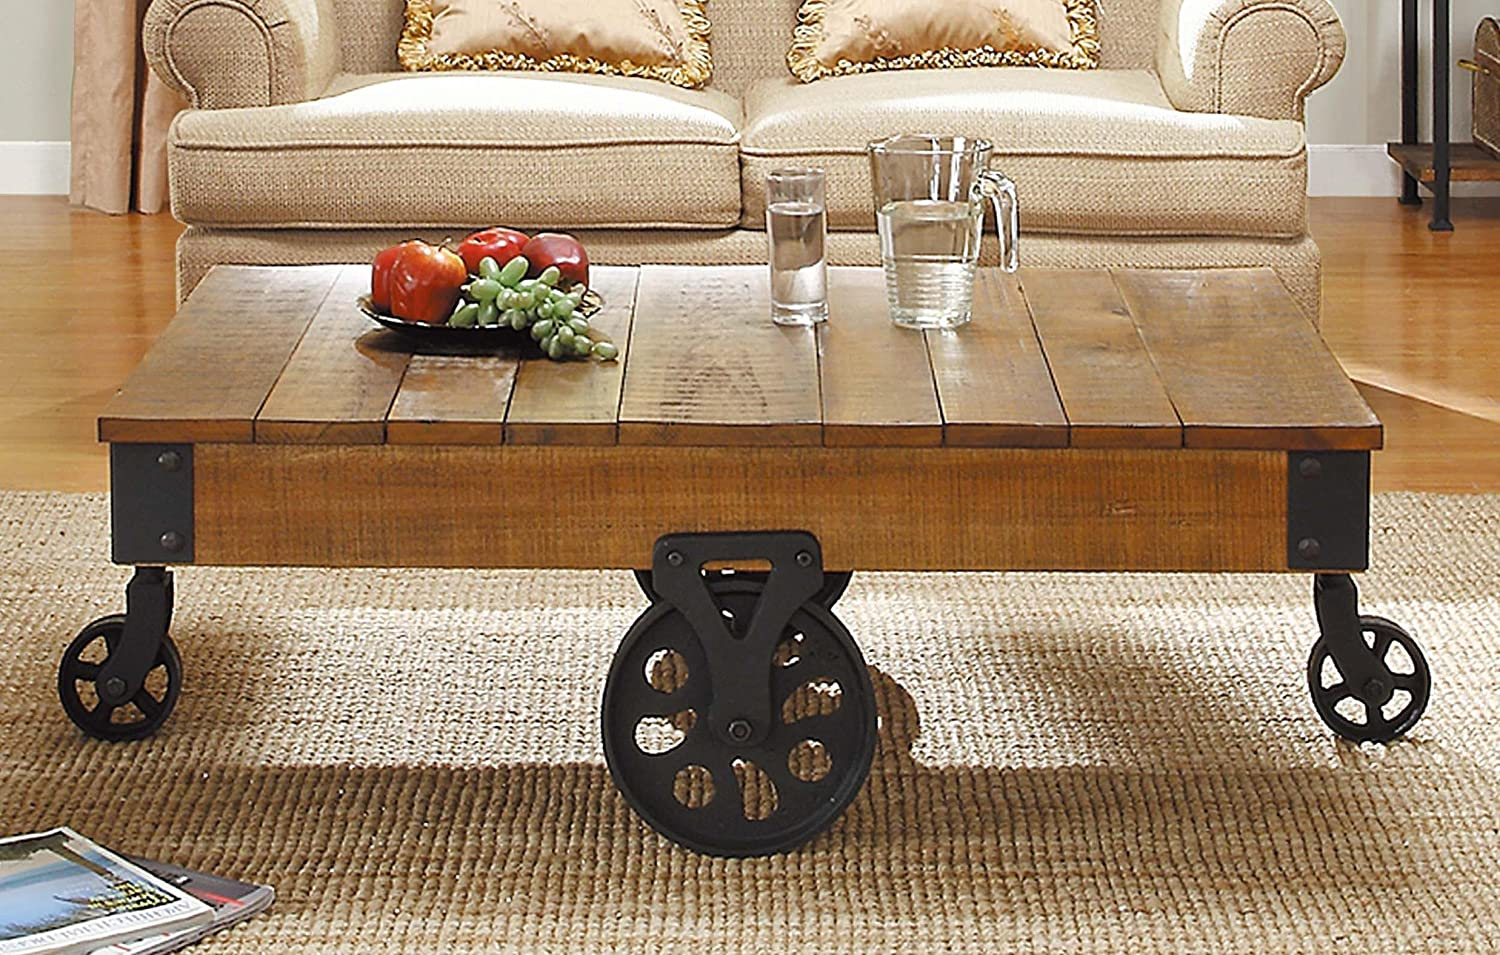 Amazon.com: Homelegance Factory Modern Industrial Style Coffee Table,  Rustic Brown: Kitchen & Dining - Amazon.com: Homelegance Factory Modern Industrial Style Coffee